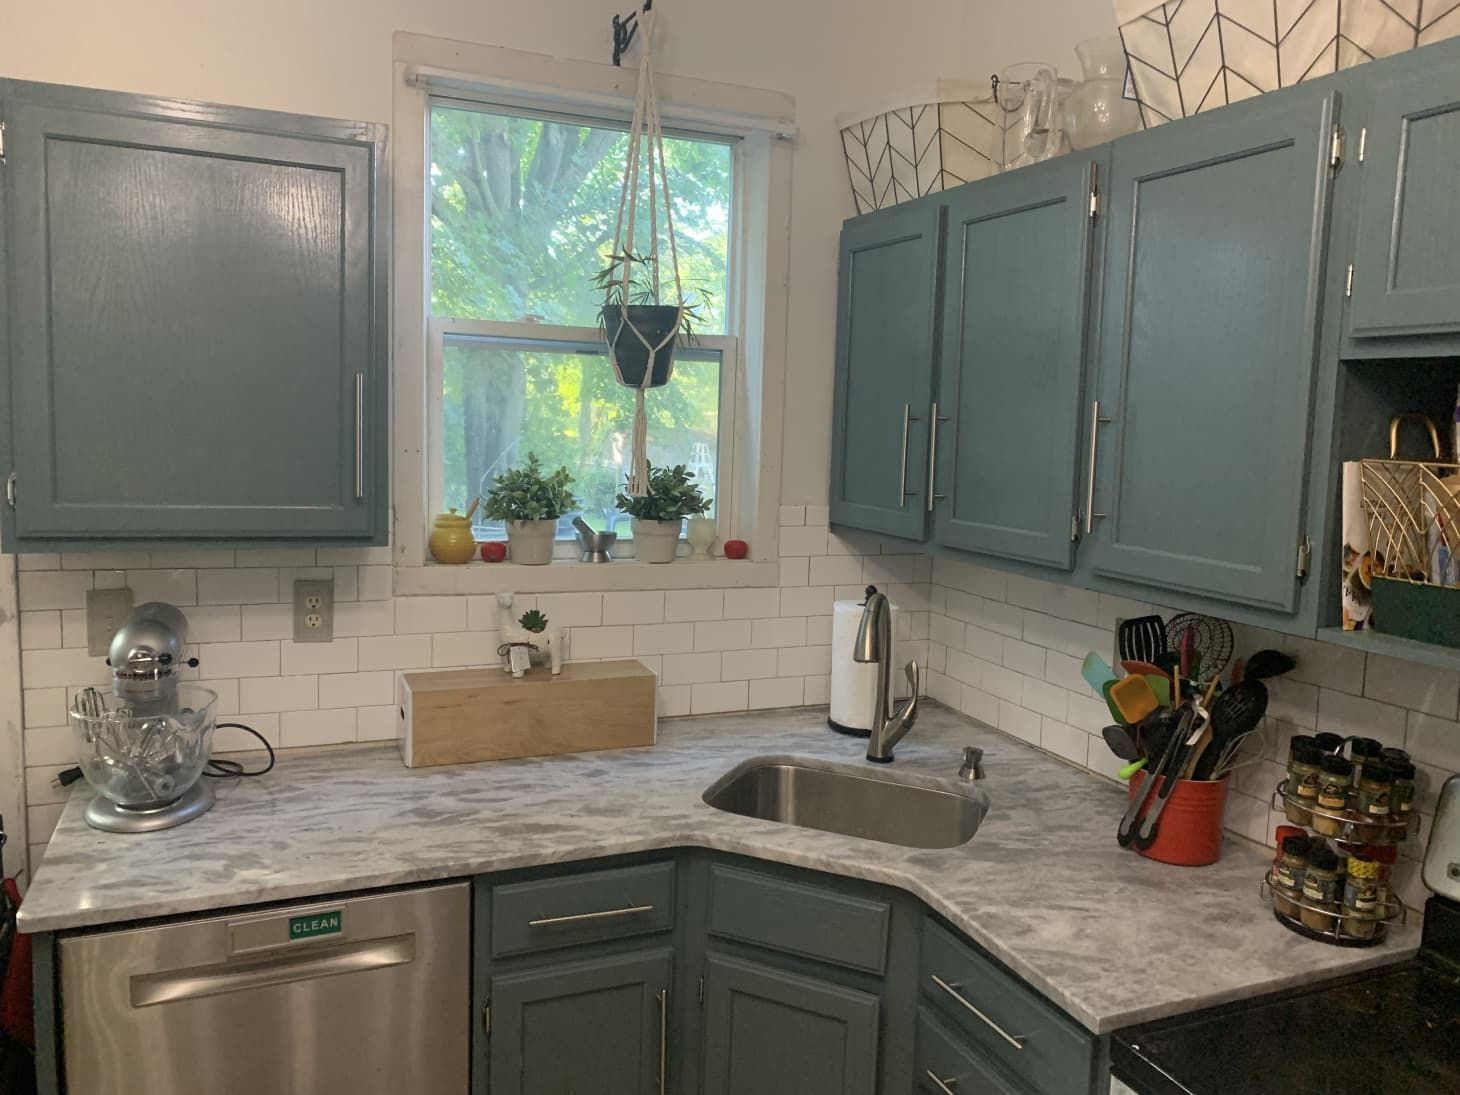 How much does it really cost to install new kitchen